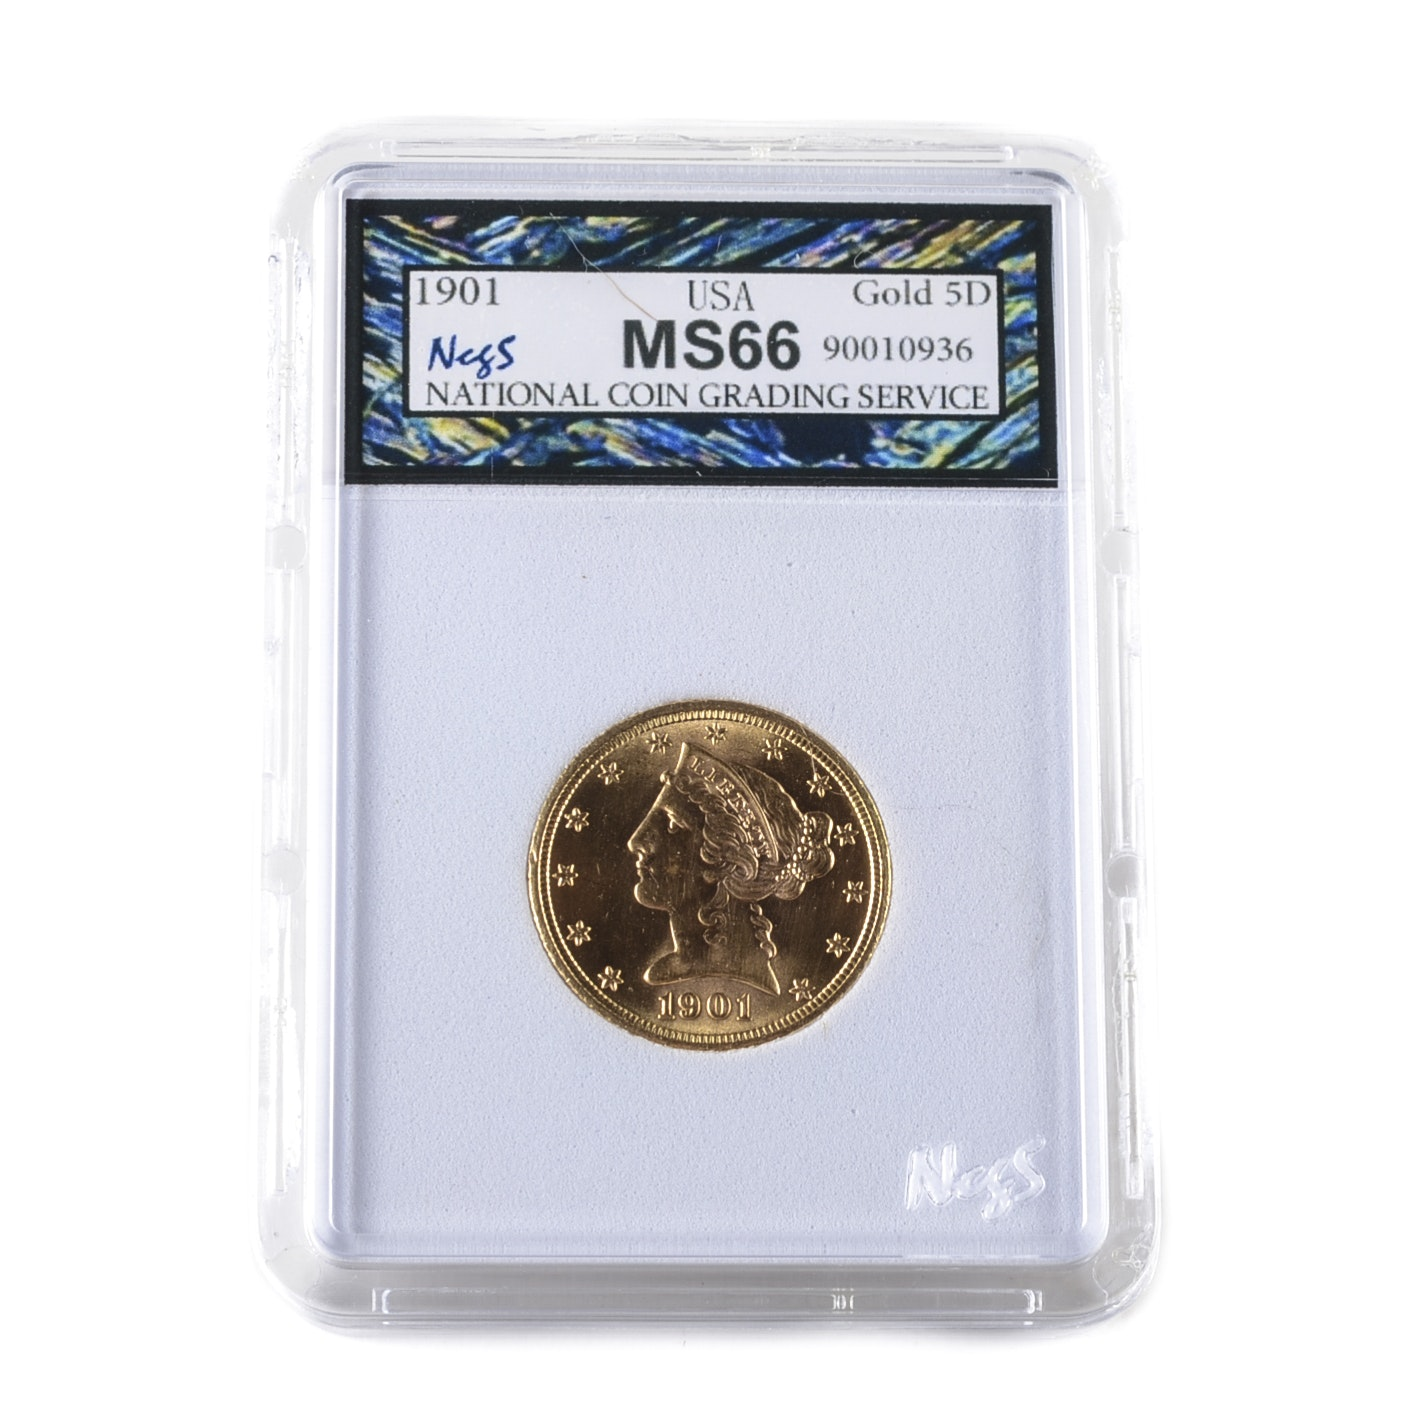 Graded MS66 (By NCGS) 1901 Liberty Head $5 Gold Coin